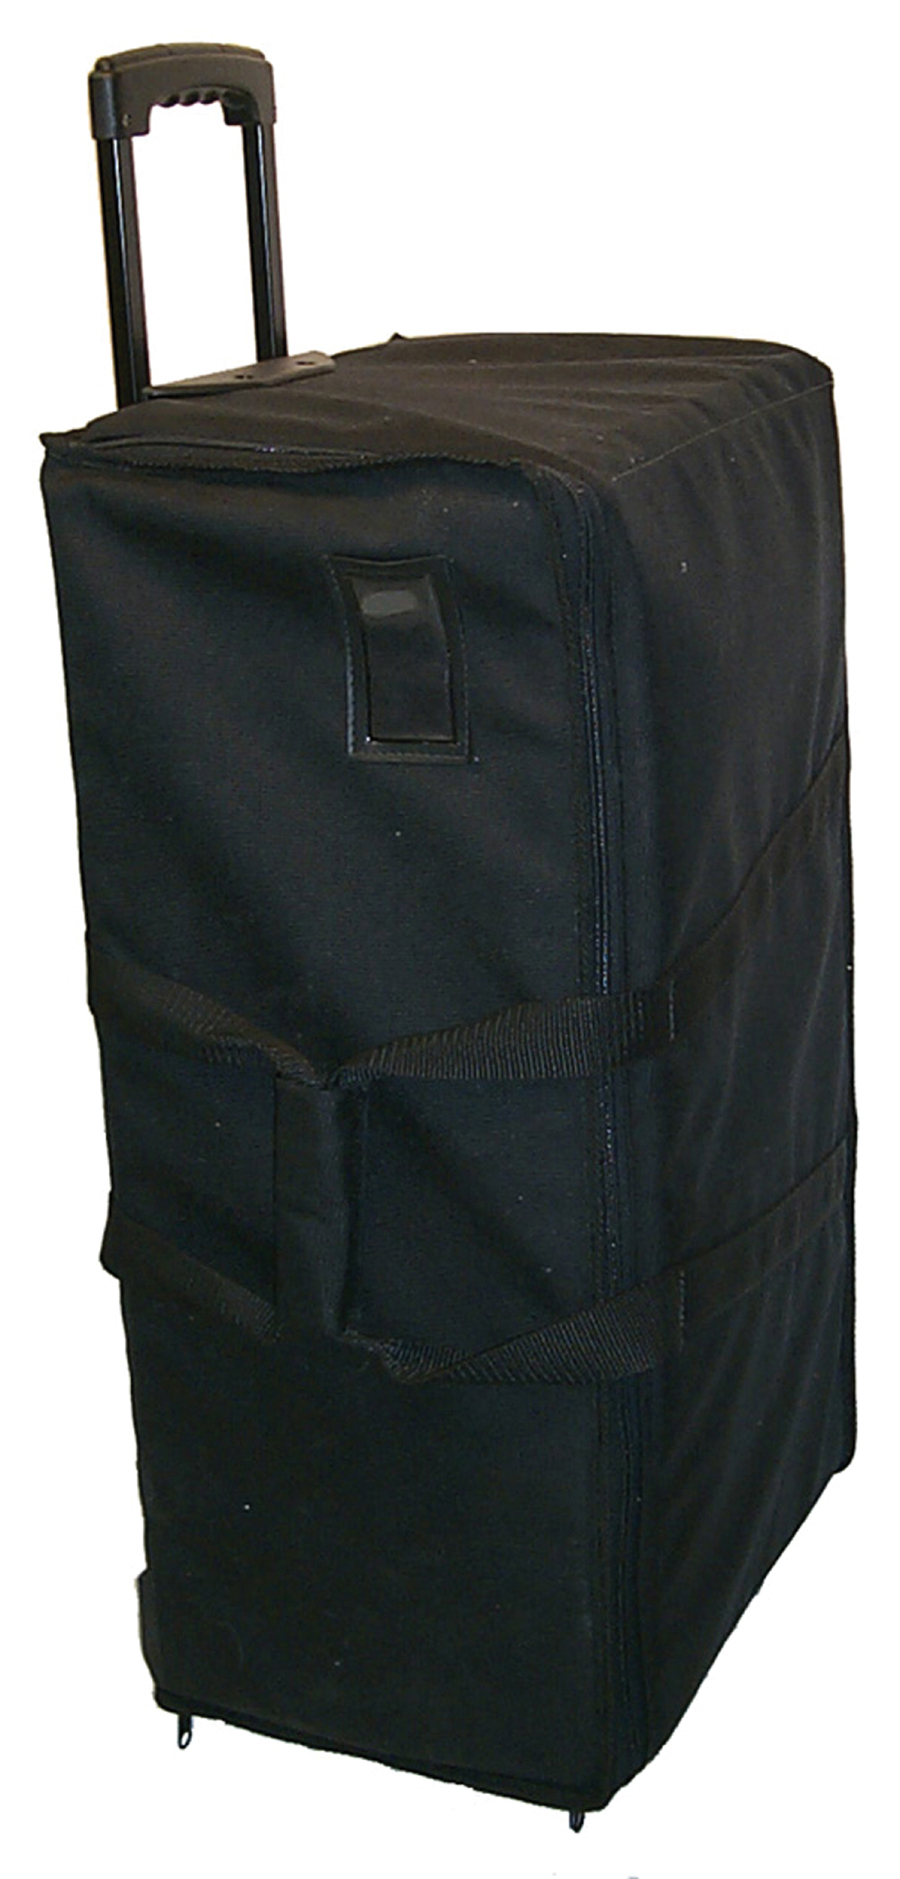 Amplivox S1960 Universal Soft Carrying Case